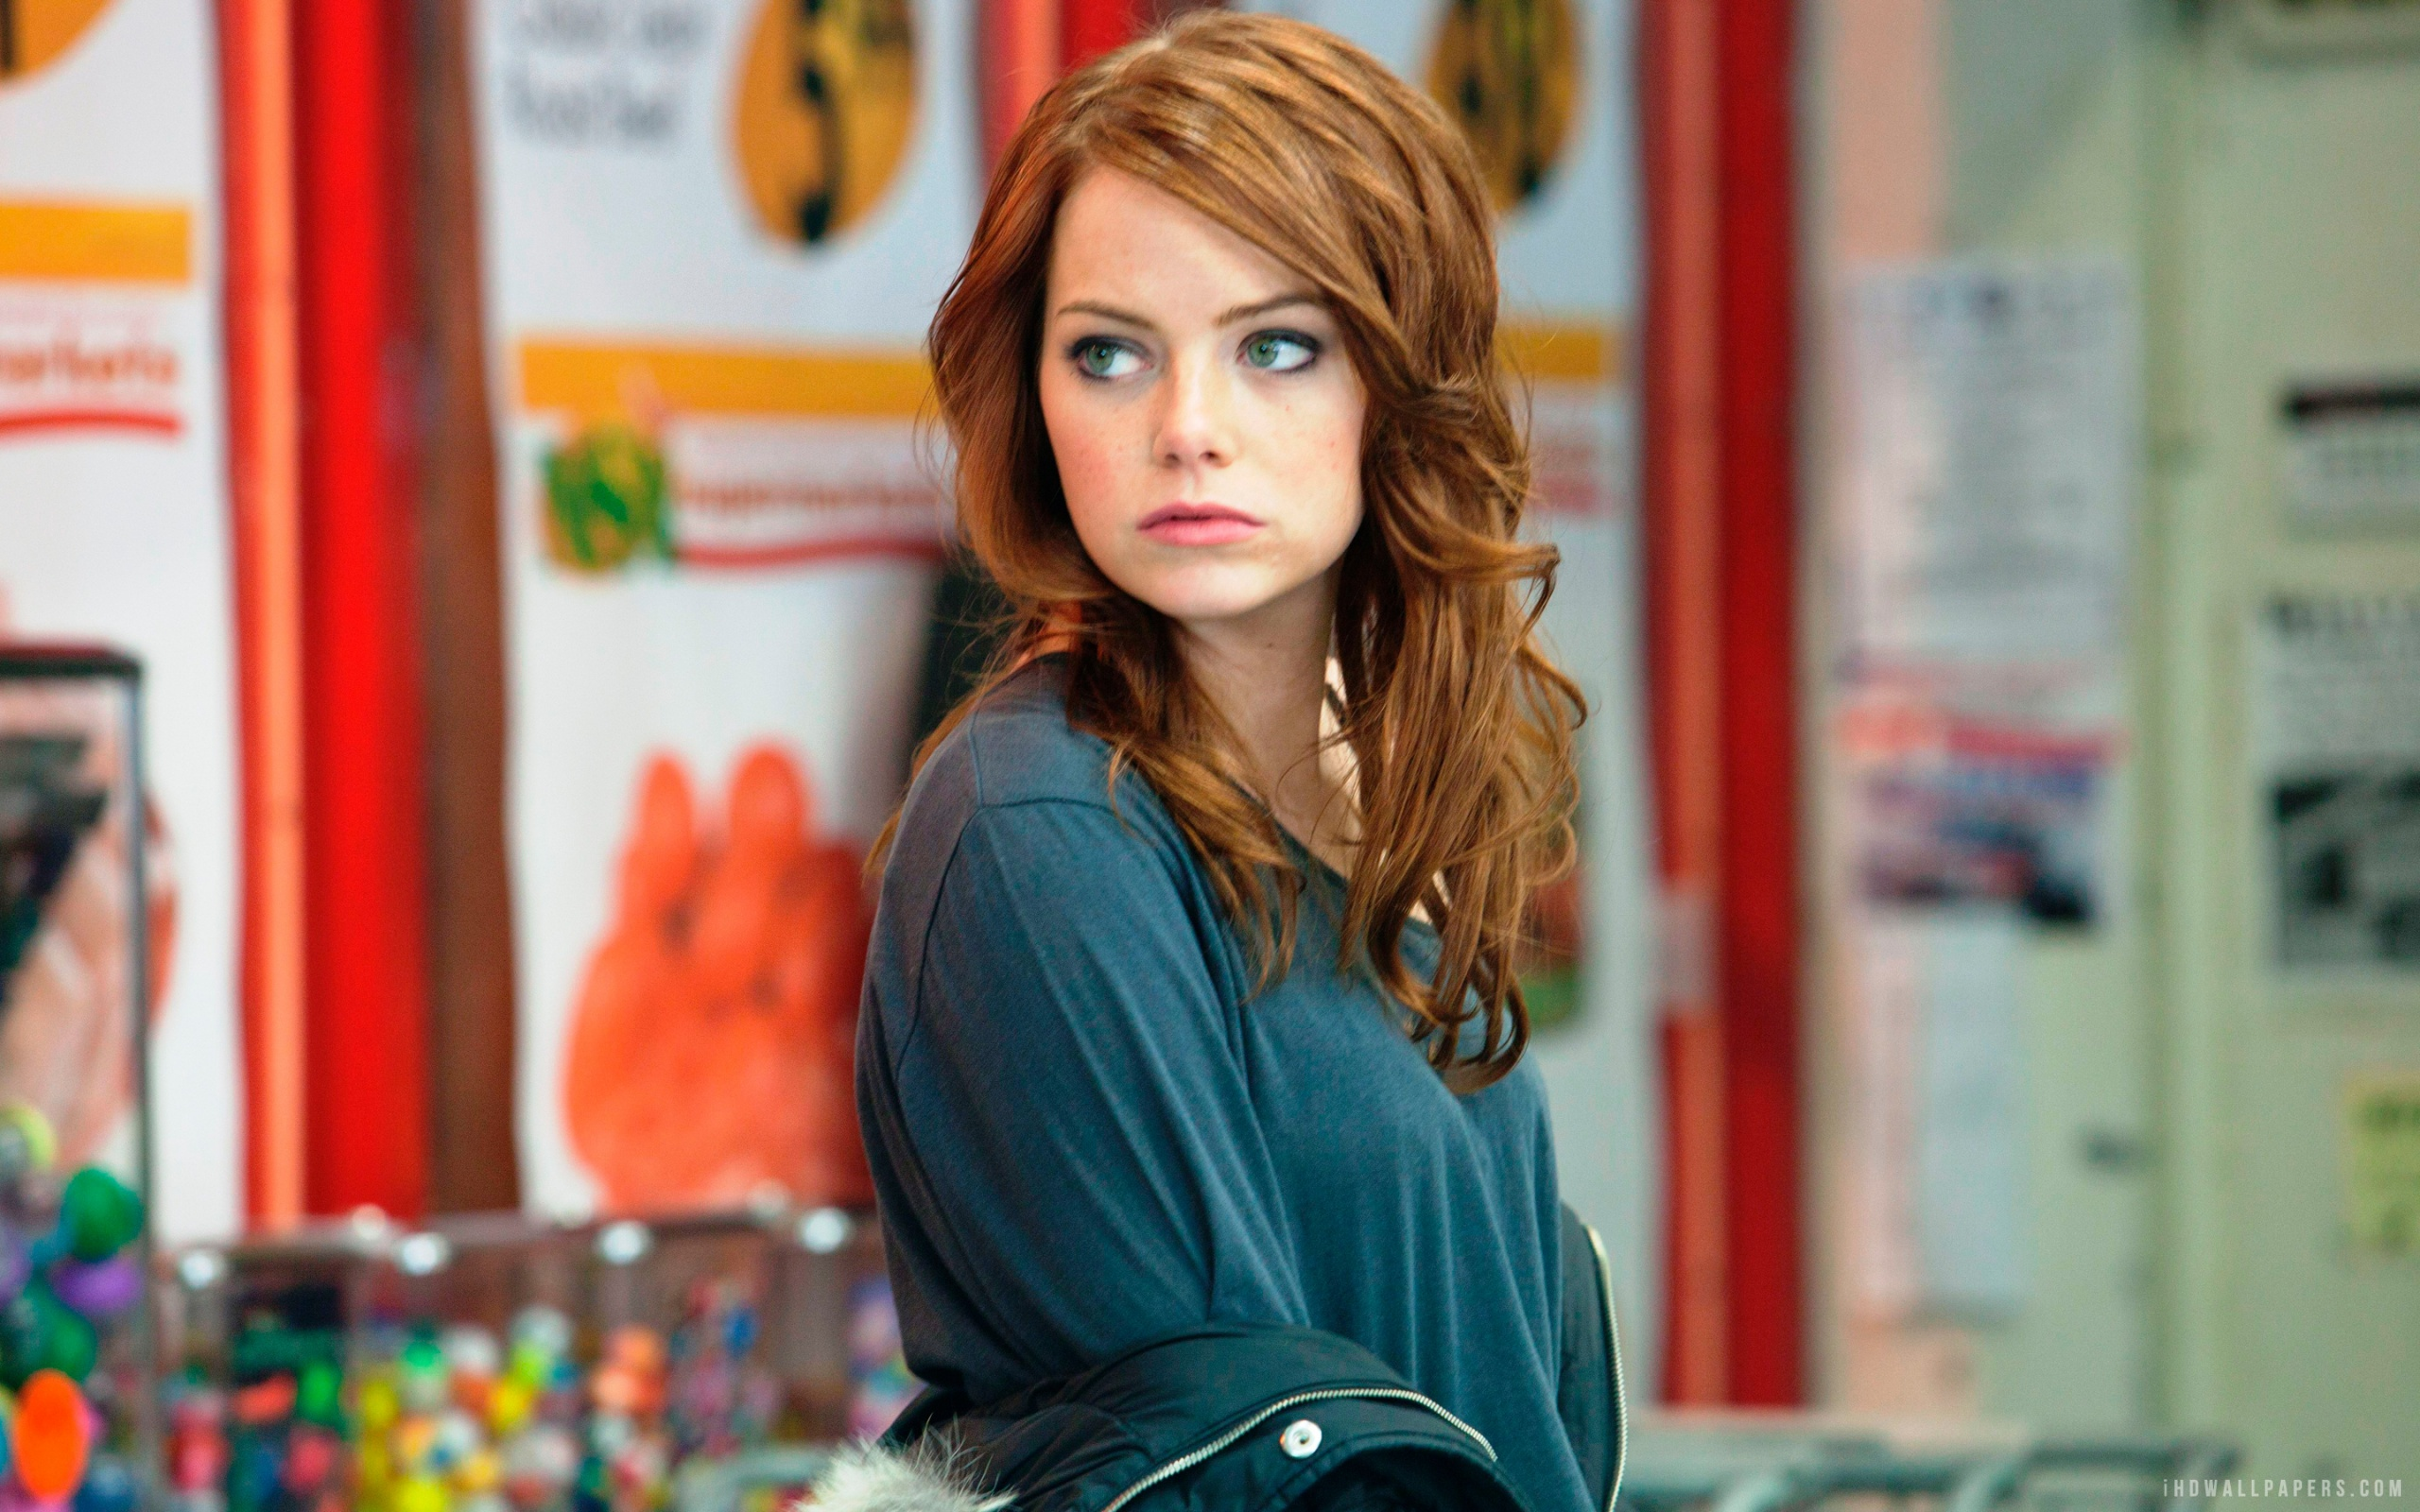 352 Emma Stone Hd Wallpapers Background Images Wallpaper Abyss